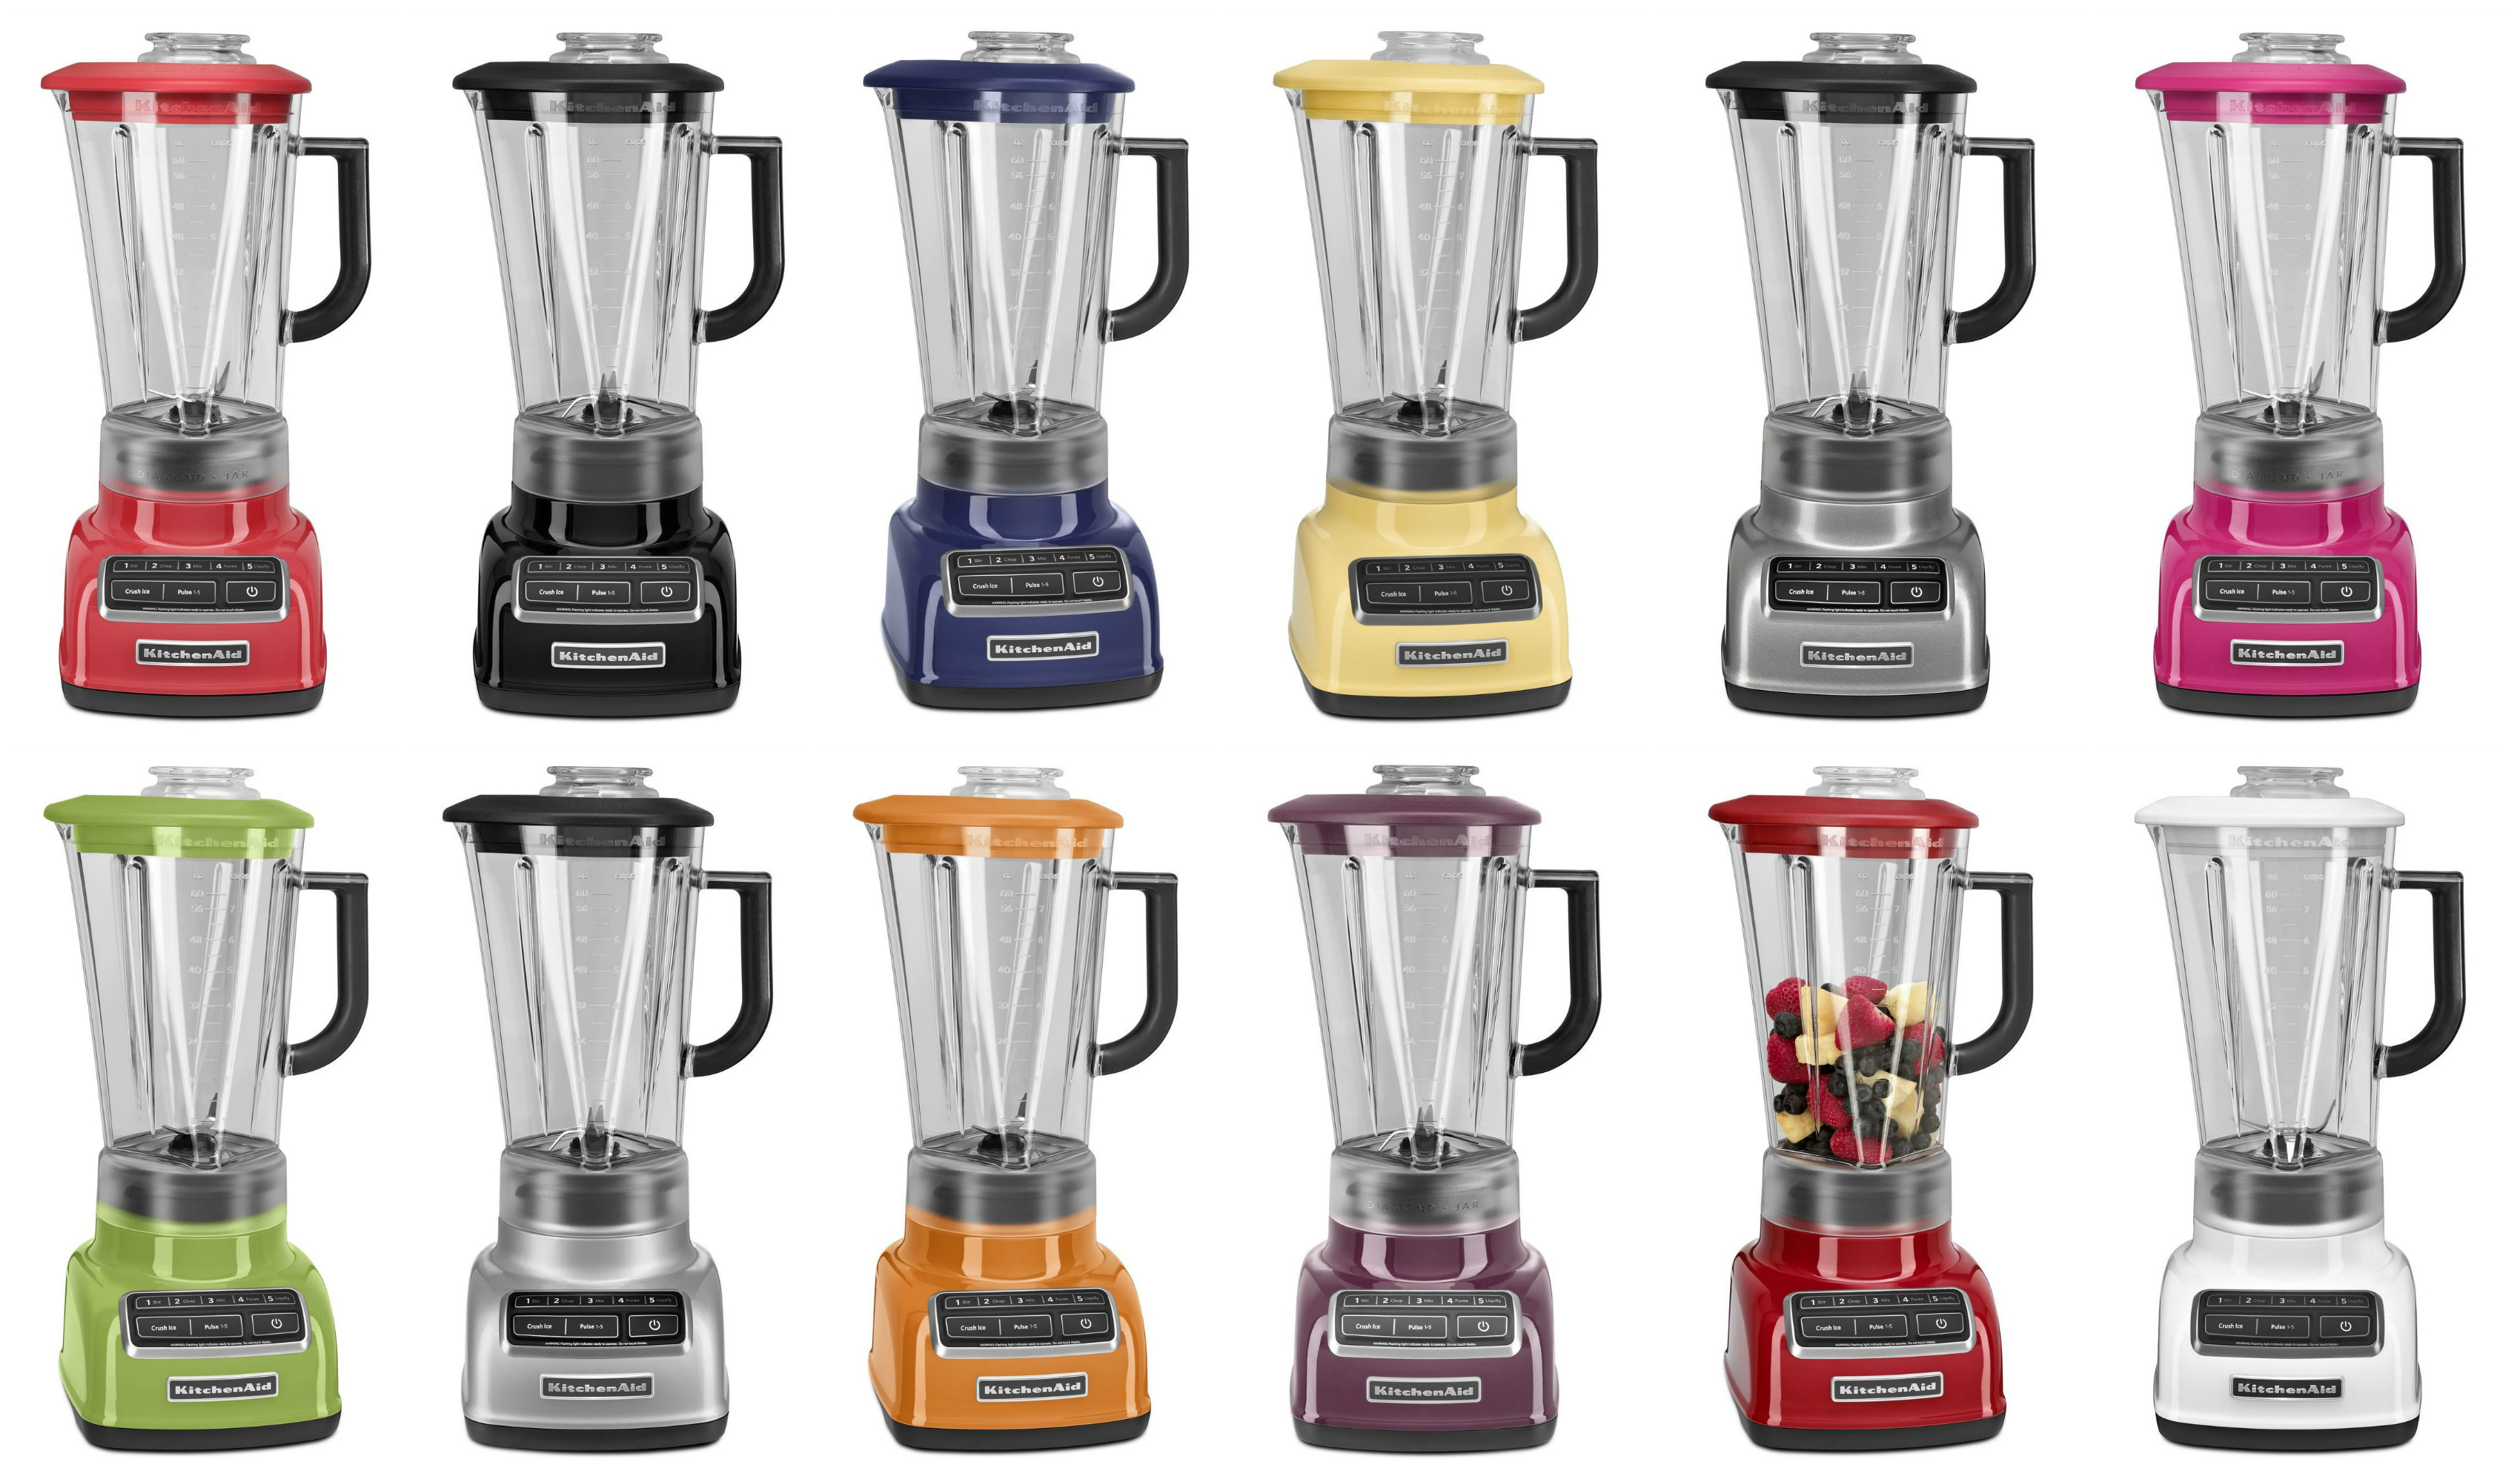 https://www.cooklogic.com/wp-content/uploads/2017/05/KitchenAid_Color_Options.jpg